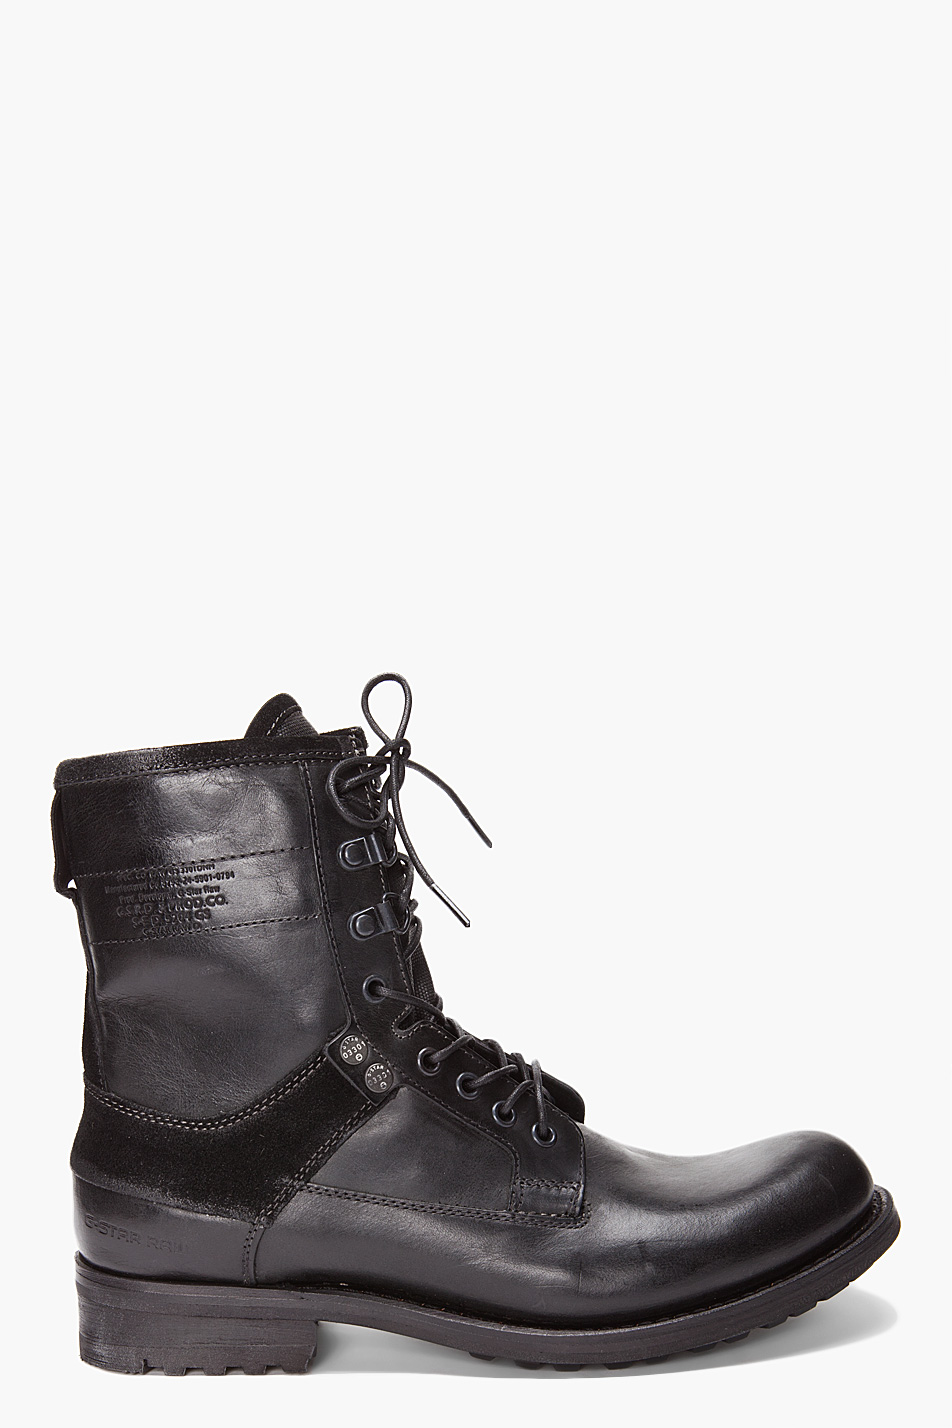 g star raw patton maker boots in black for men lyst. Black Bedroom Furniture Sets. Home Design Ideas